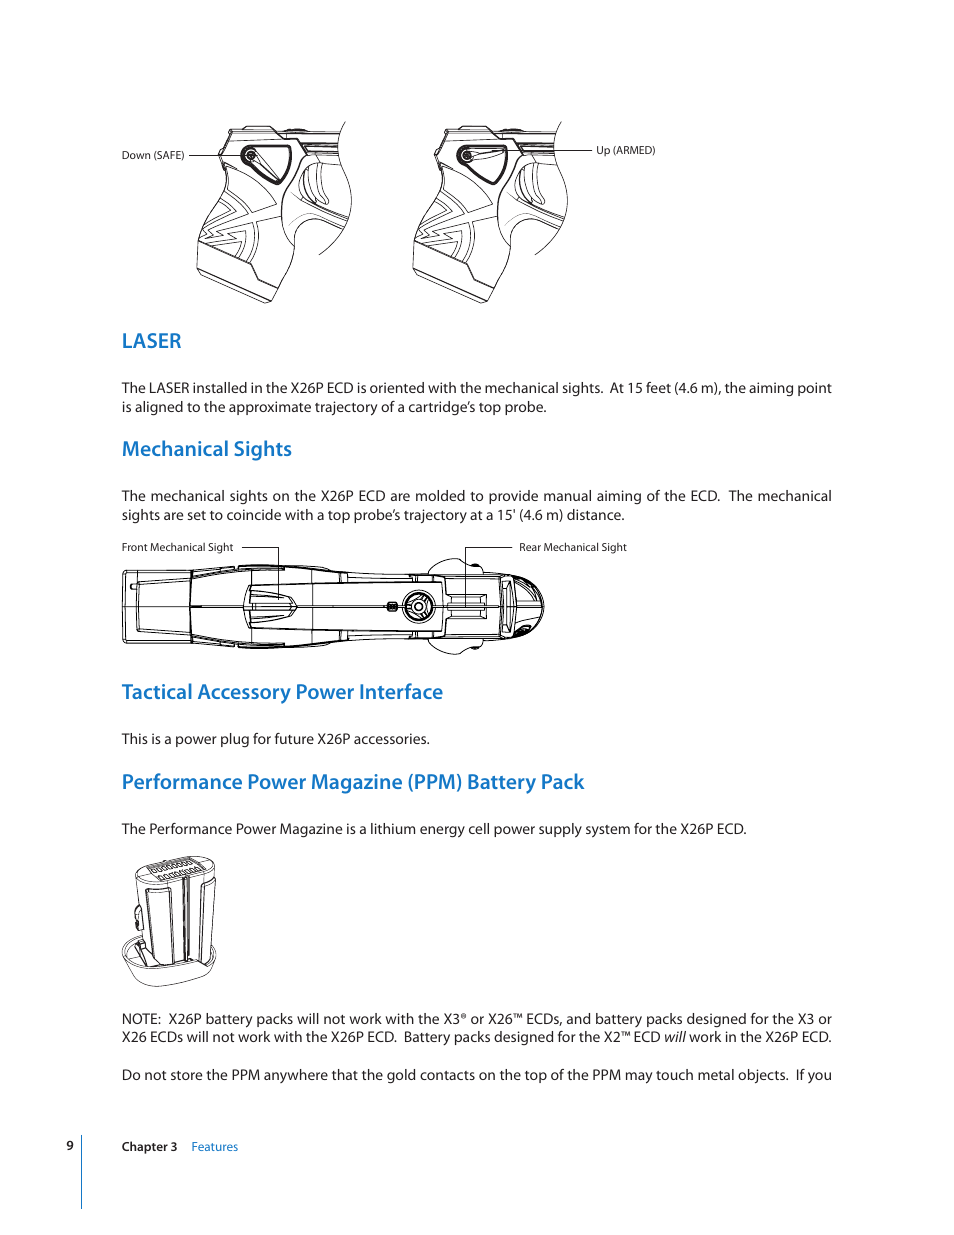 Lithium Battery Pack >> Laser, Mechanical sights, Tactical accessory power interface | Taser X26P User Manual | Page 9 / 34